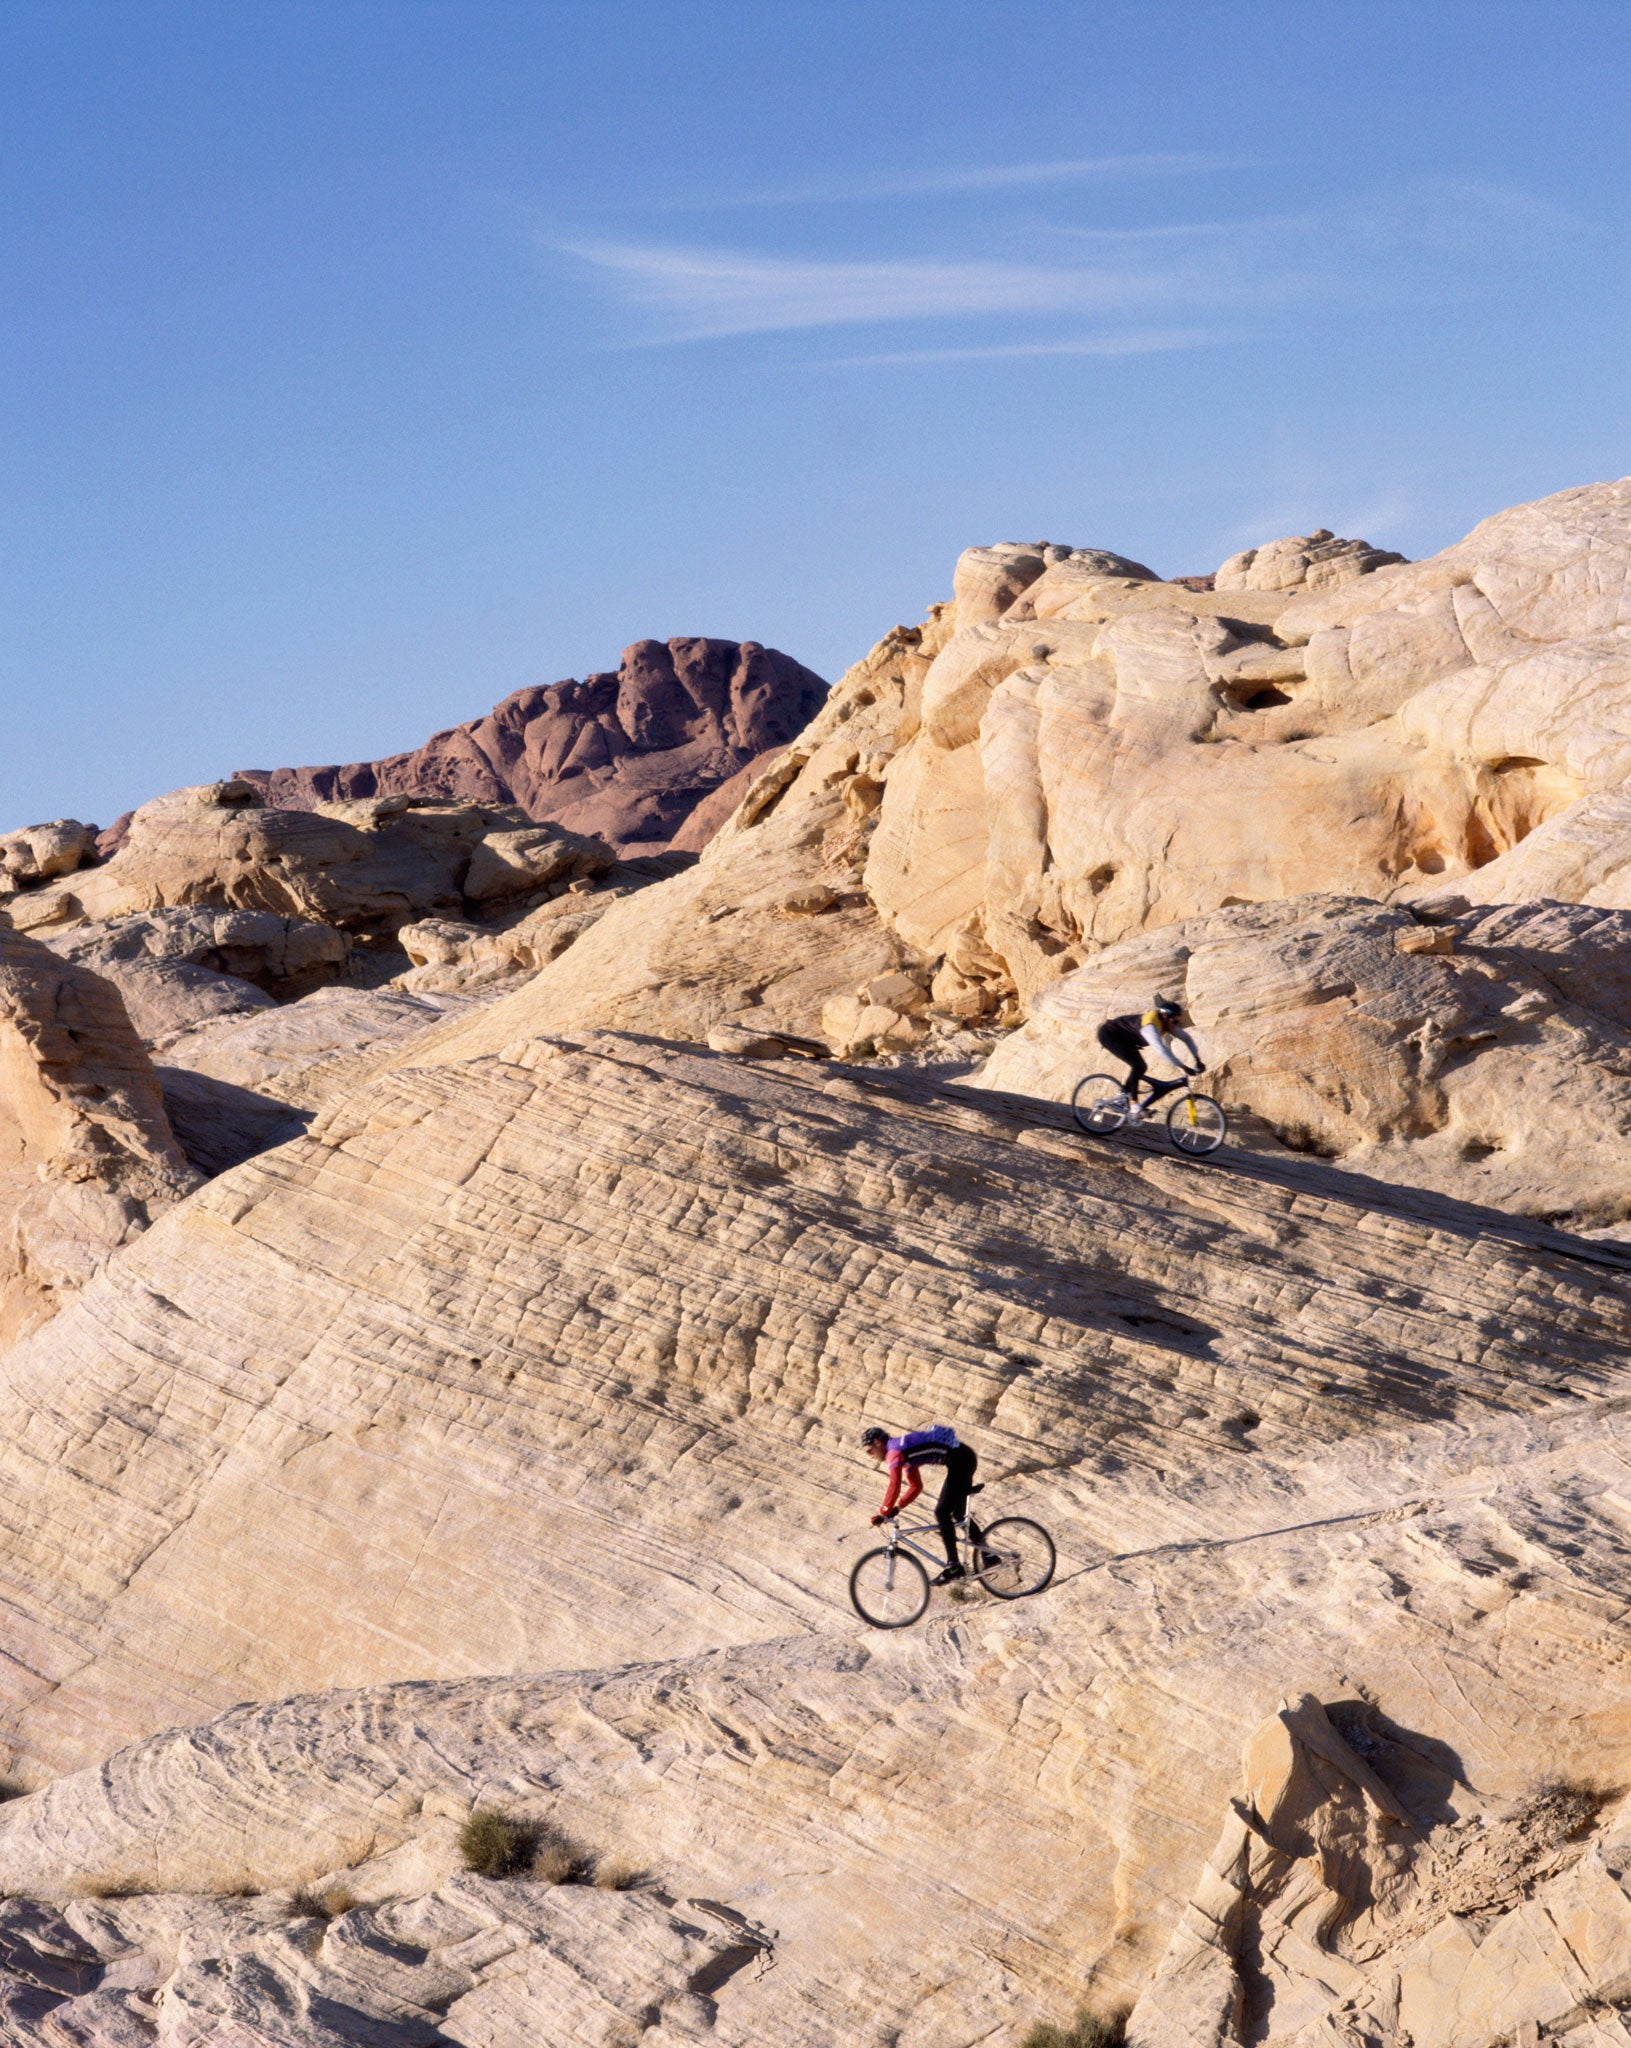 When did it all start to go downhill for mountain biking?